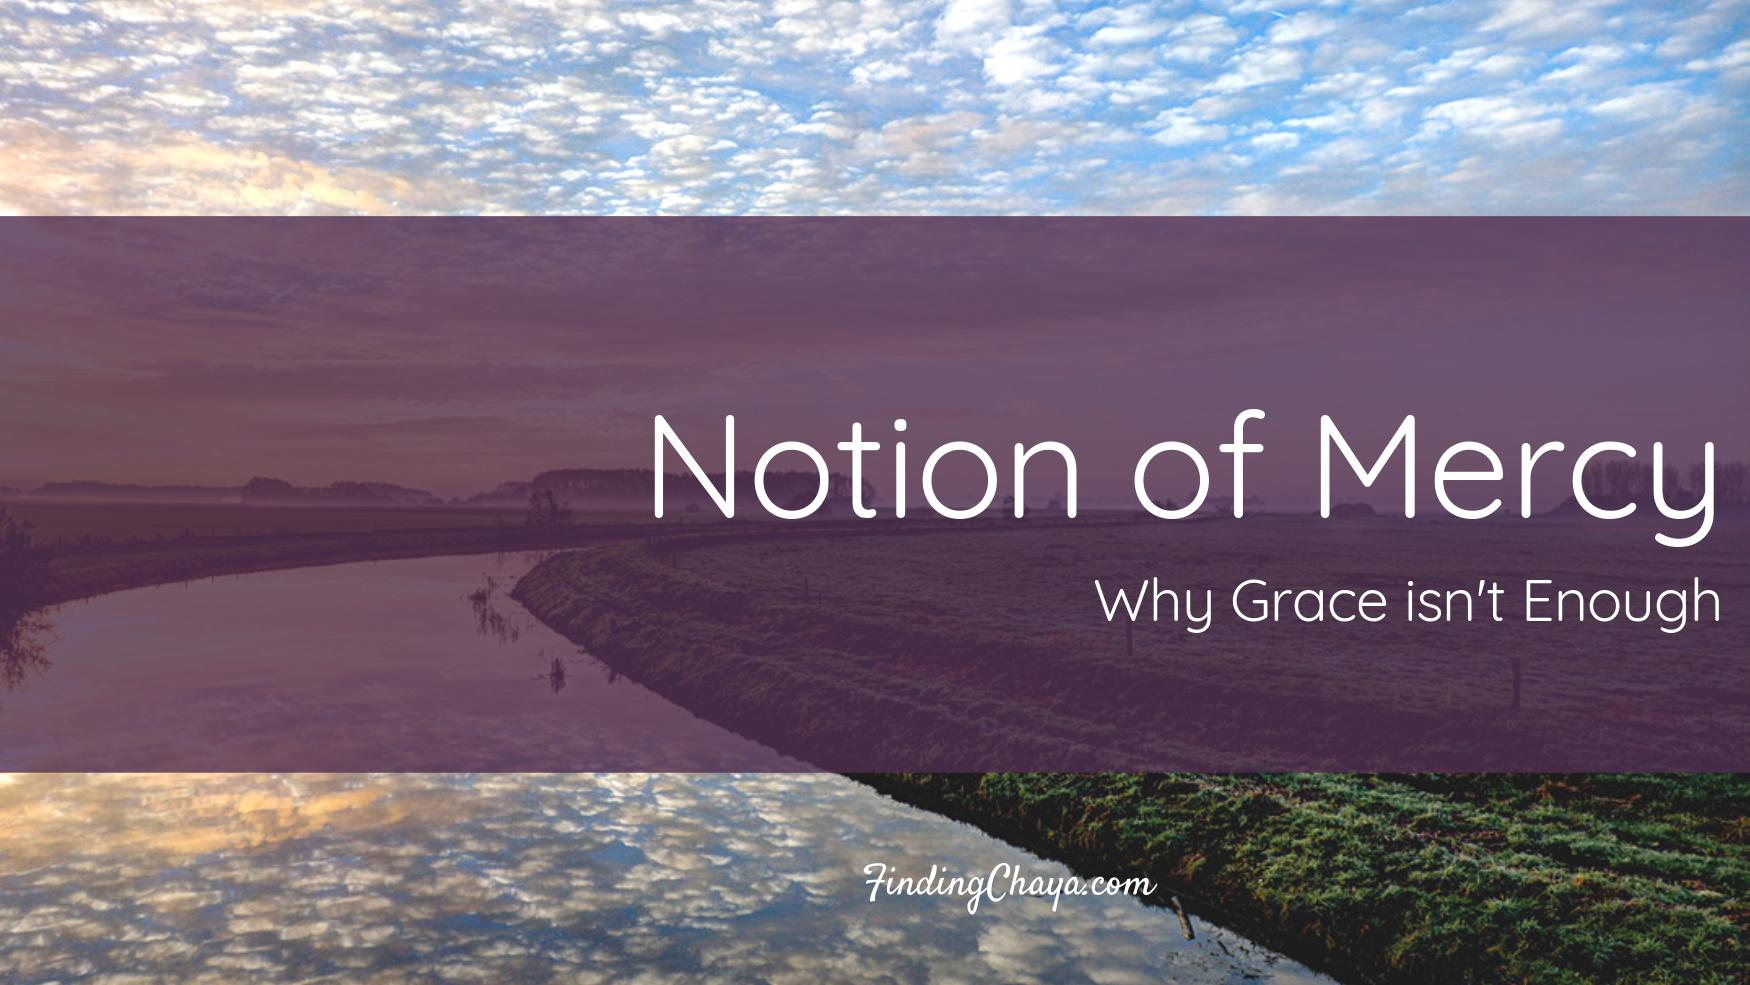 Notion of Mercy: Why Grace isn't Enough